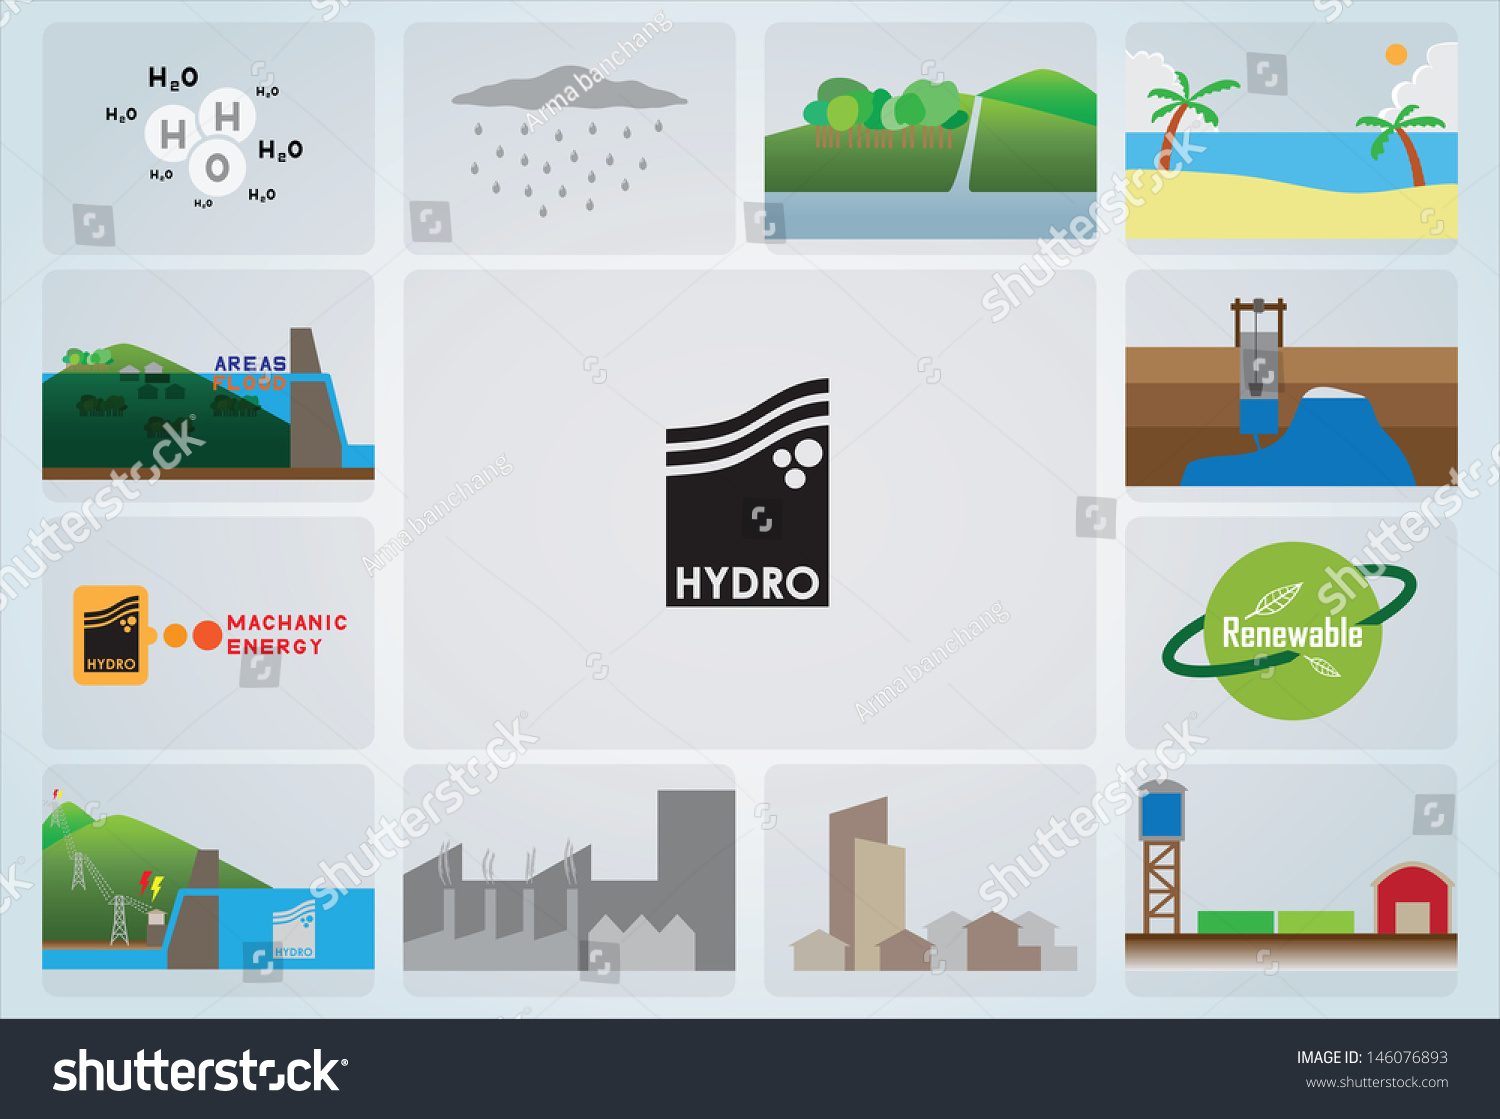 how to use shutterstock vectors